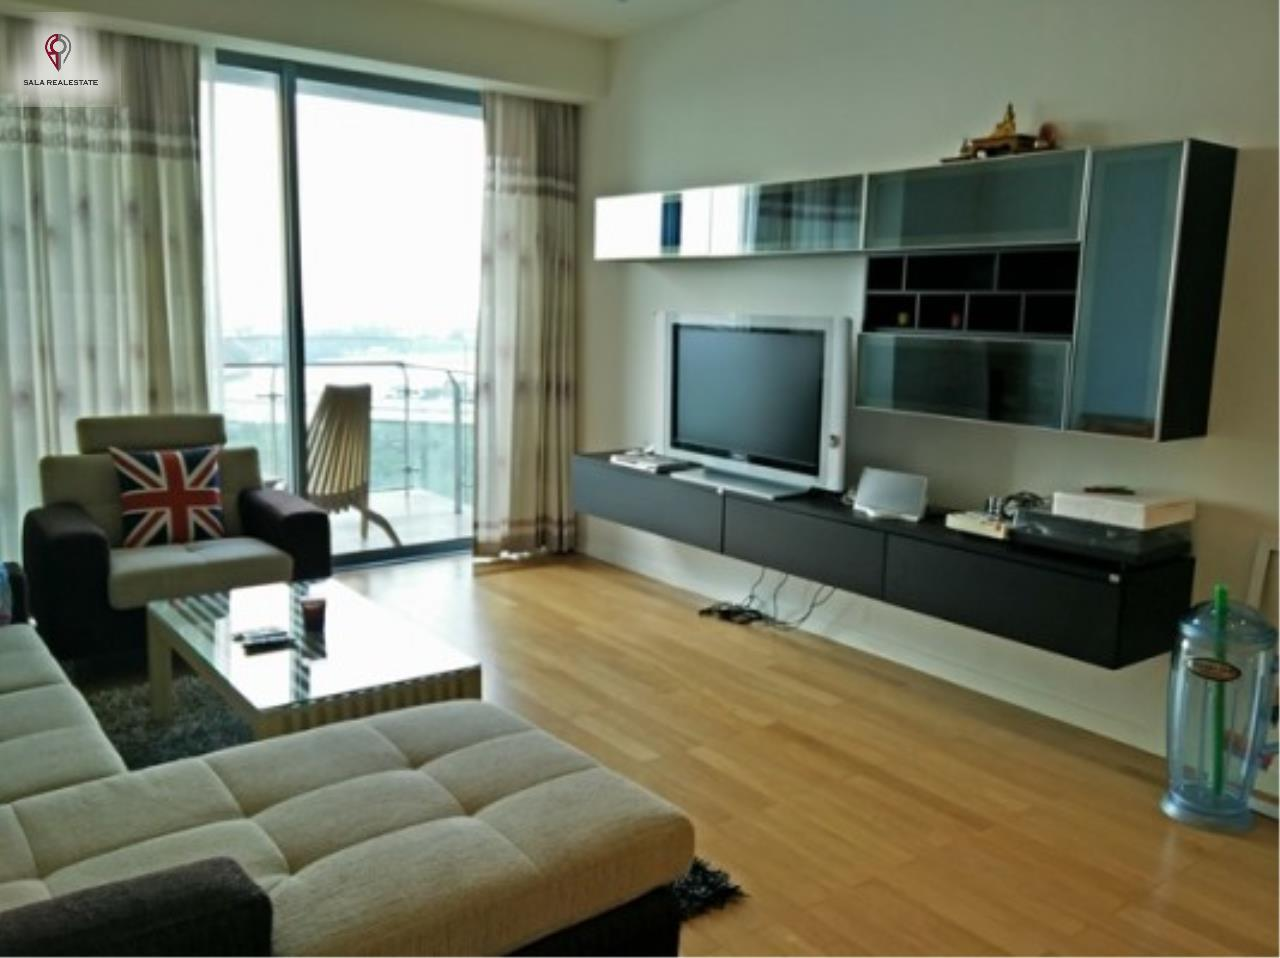 SALA ESTATE Agency's ( FOR SALE ) THE PANO - 2 BEDROOMS 2 BATHROOMS, FULLY FURNISHED 1